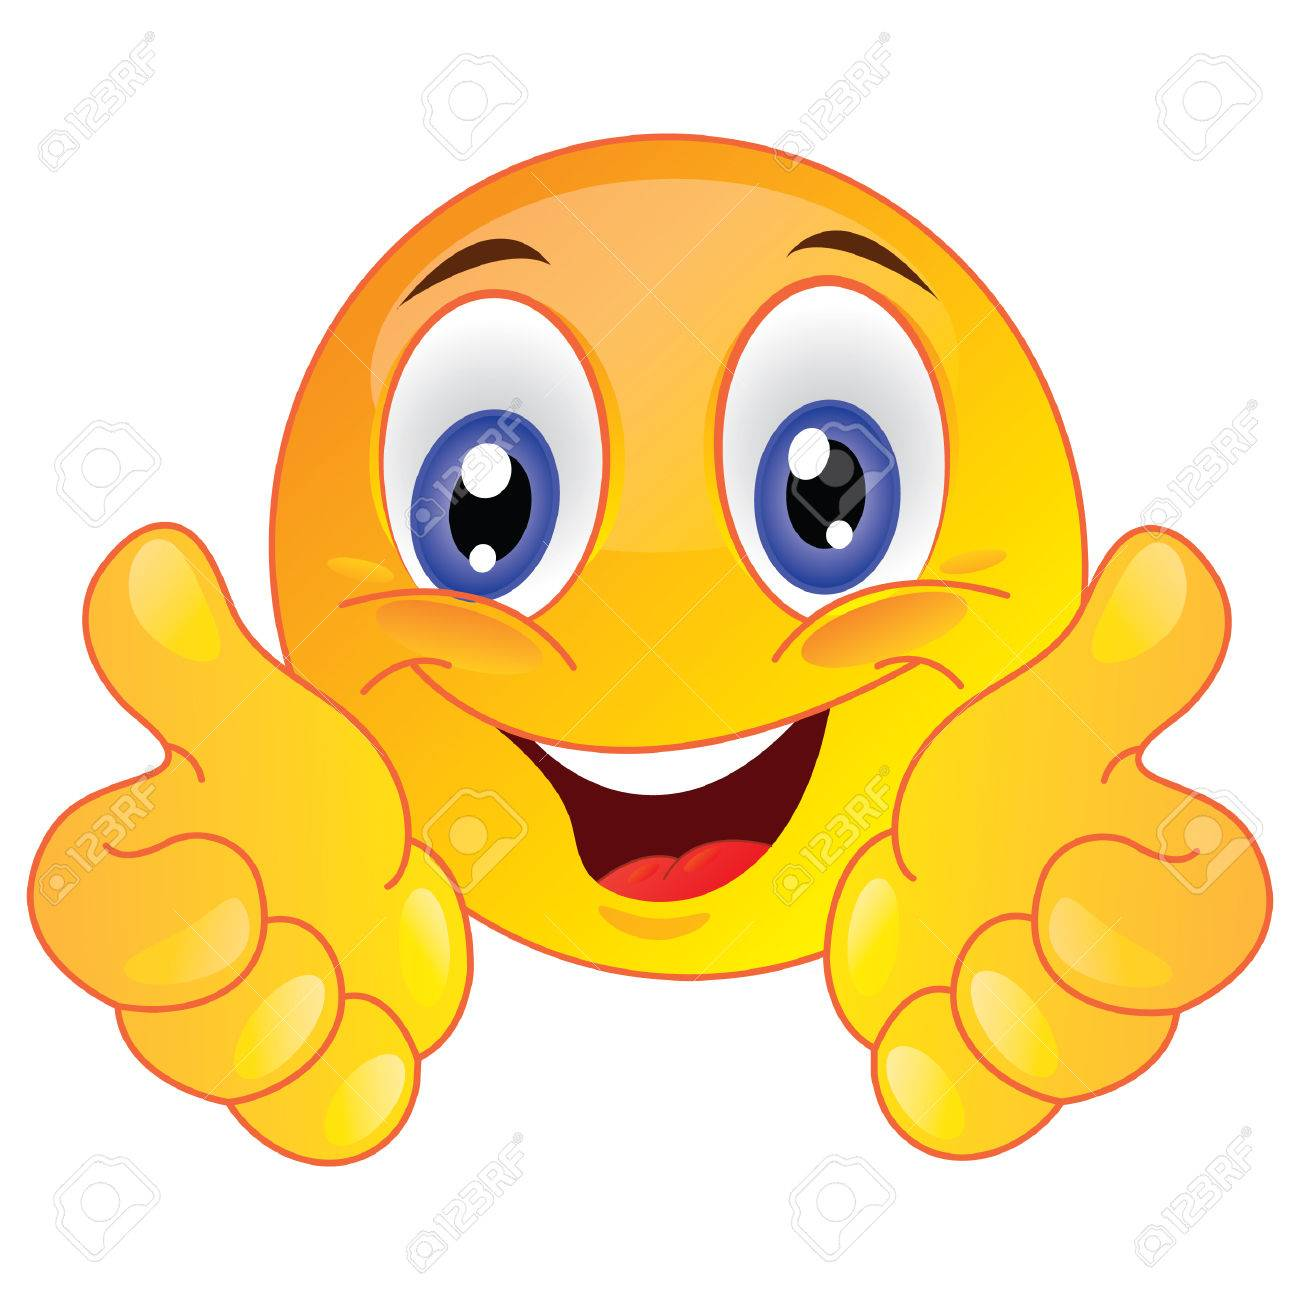 1300x1300 Smiley Face Showing Thumbs Up Royalty Free Cliparts, Vectors,